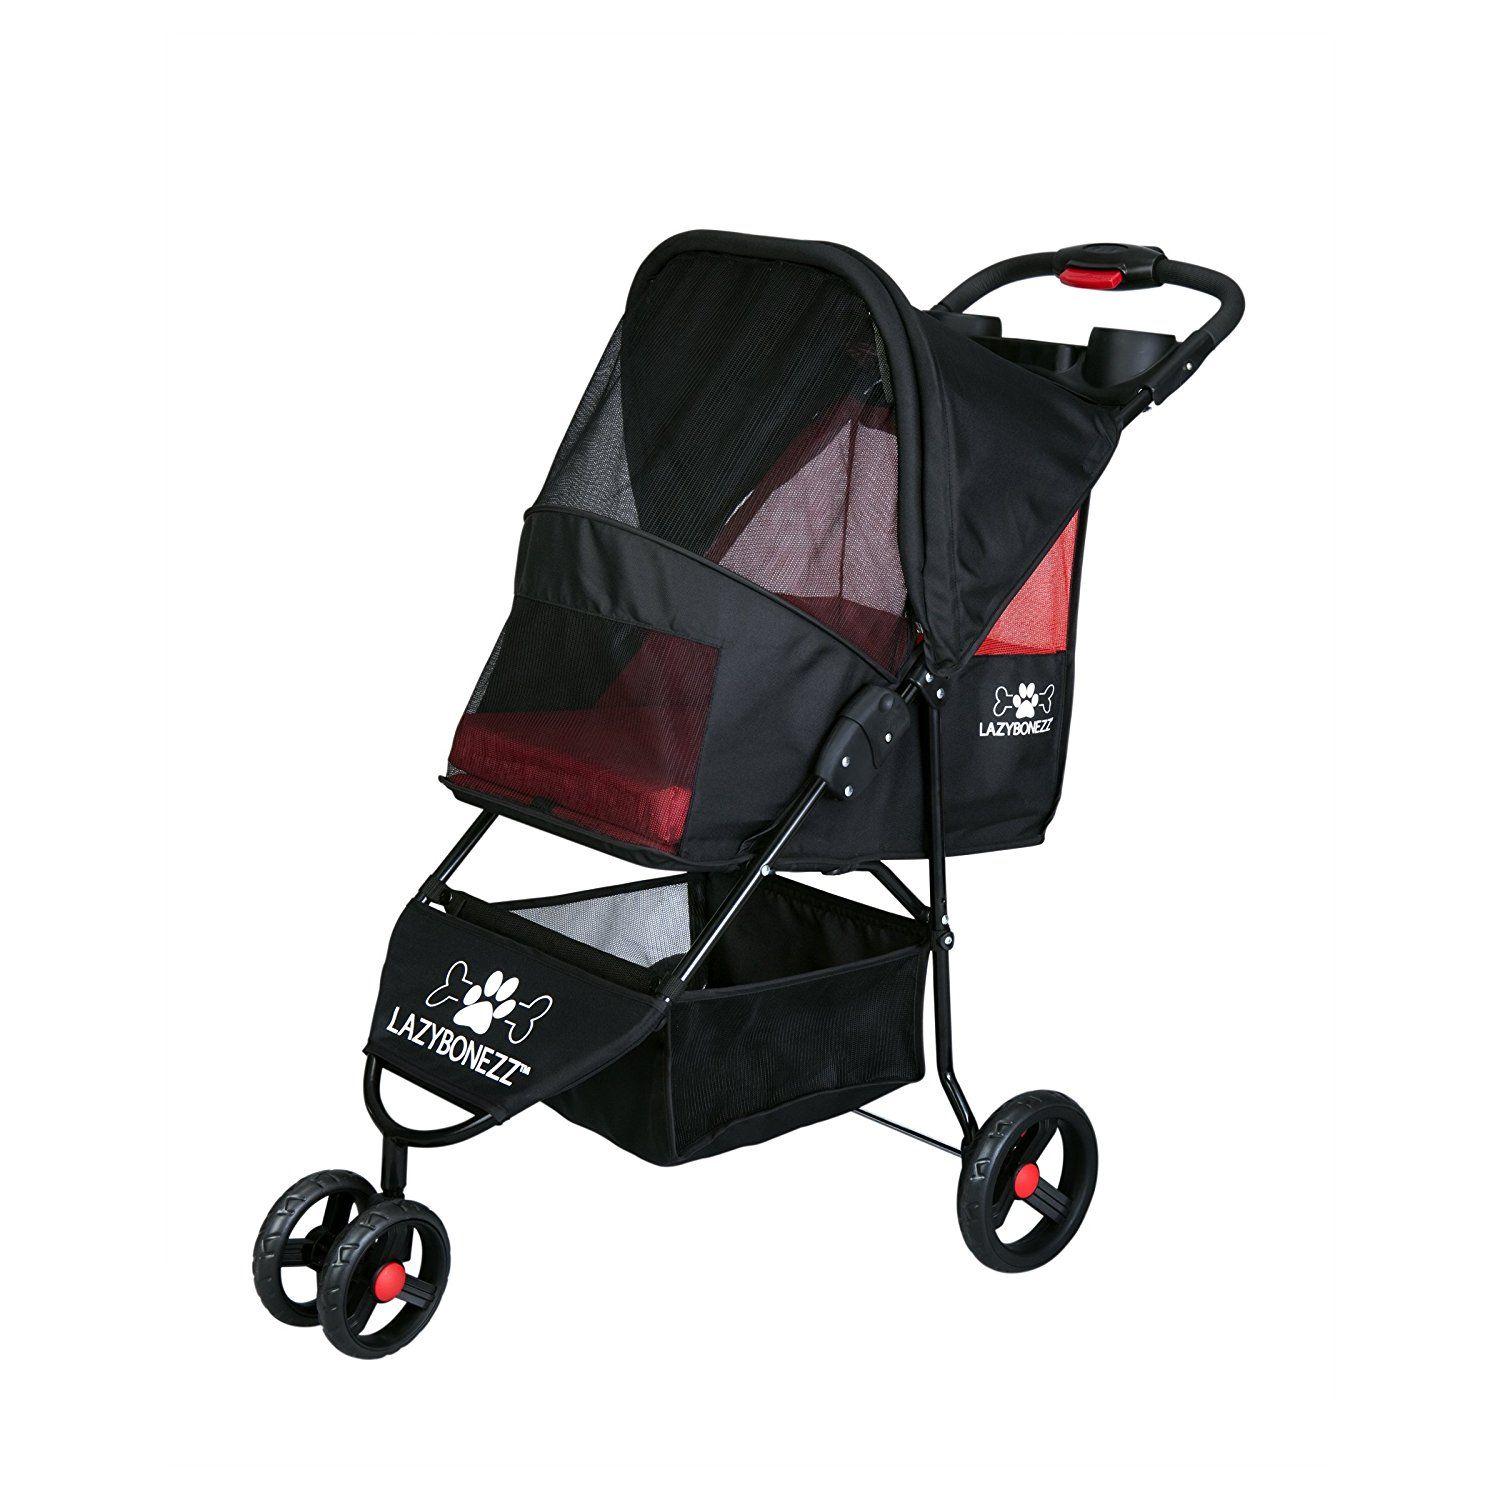 The Lazy Jogger Pet Stroller Collapsible pet jogger with machine washable pad Includes cup holders and storage